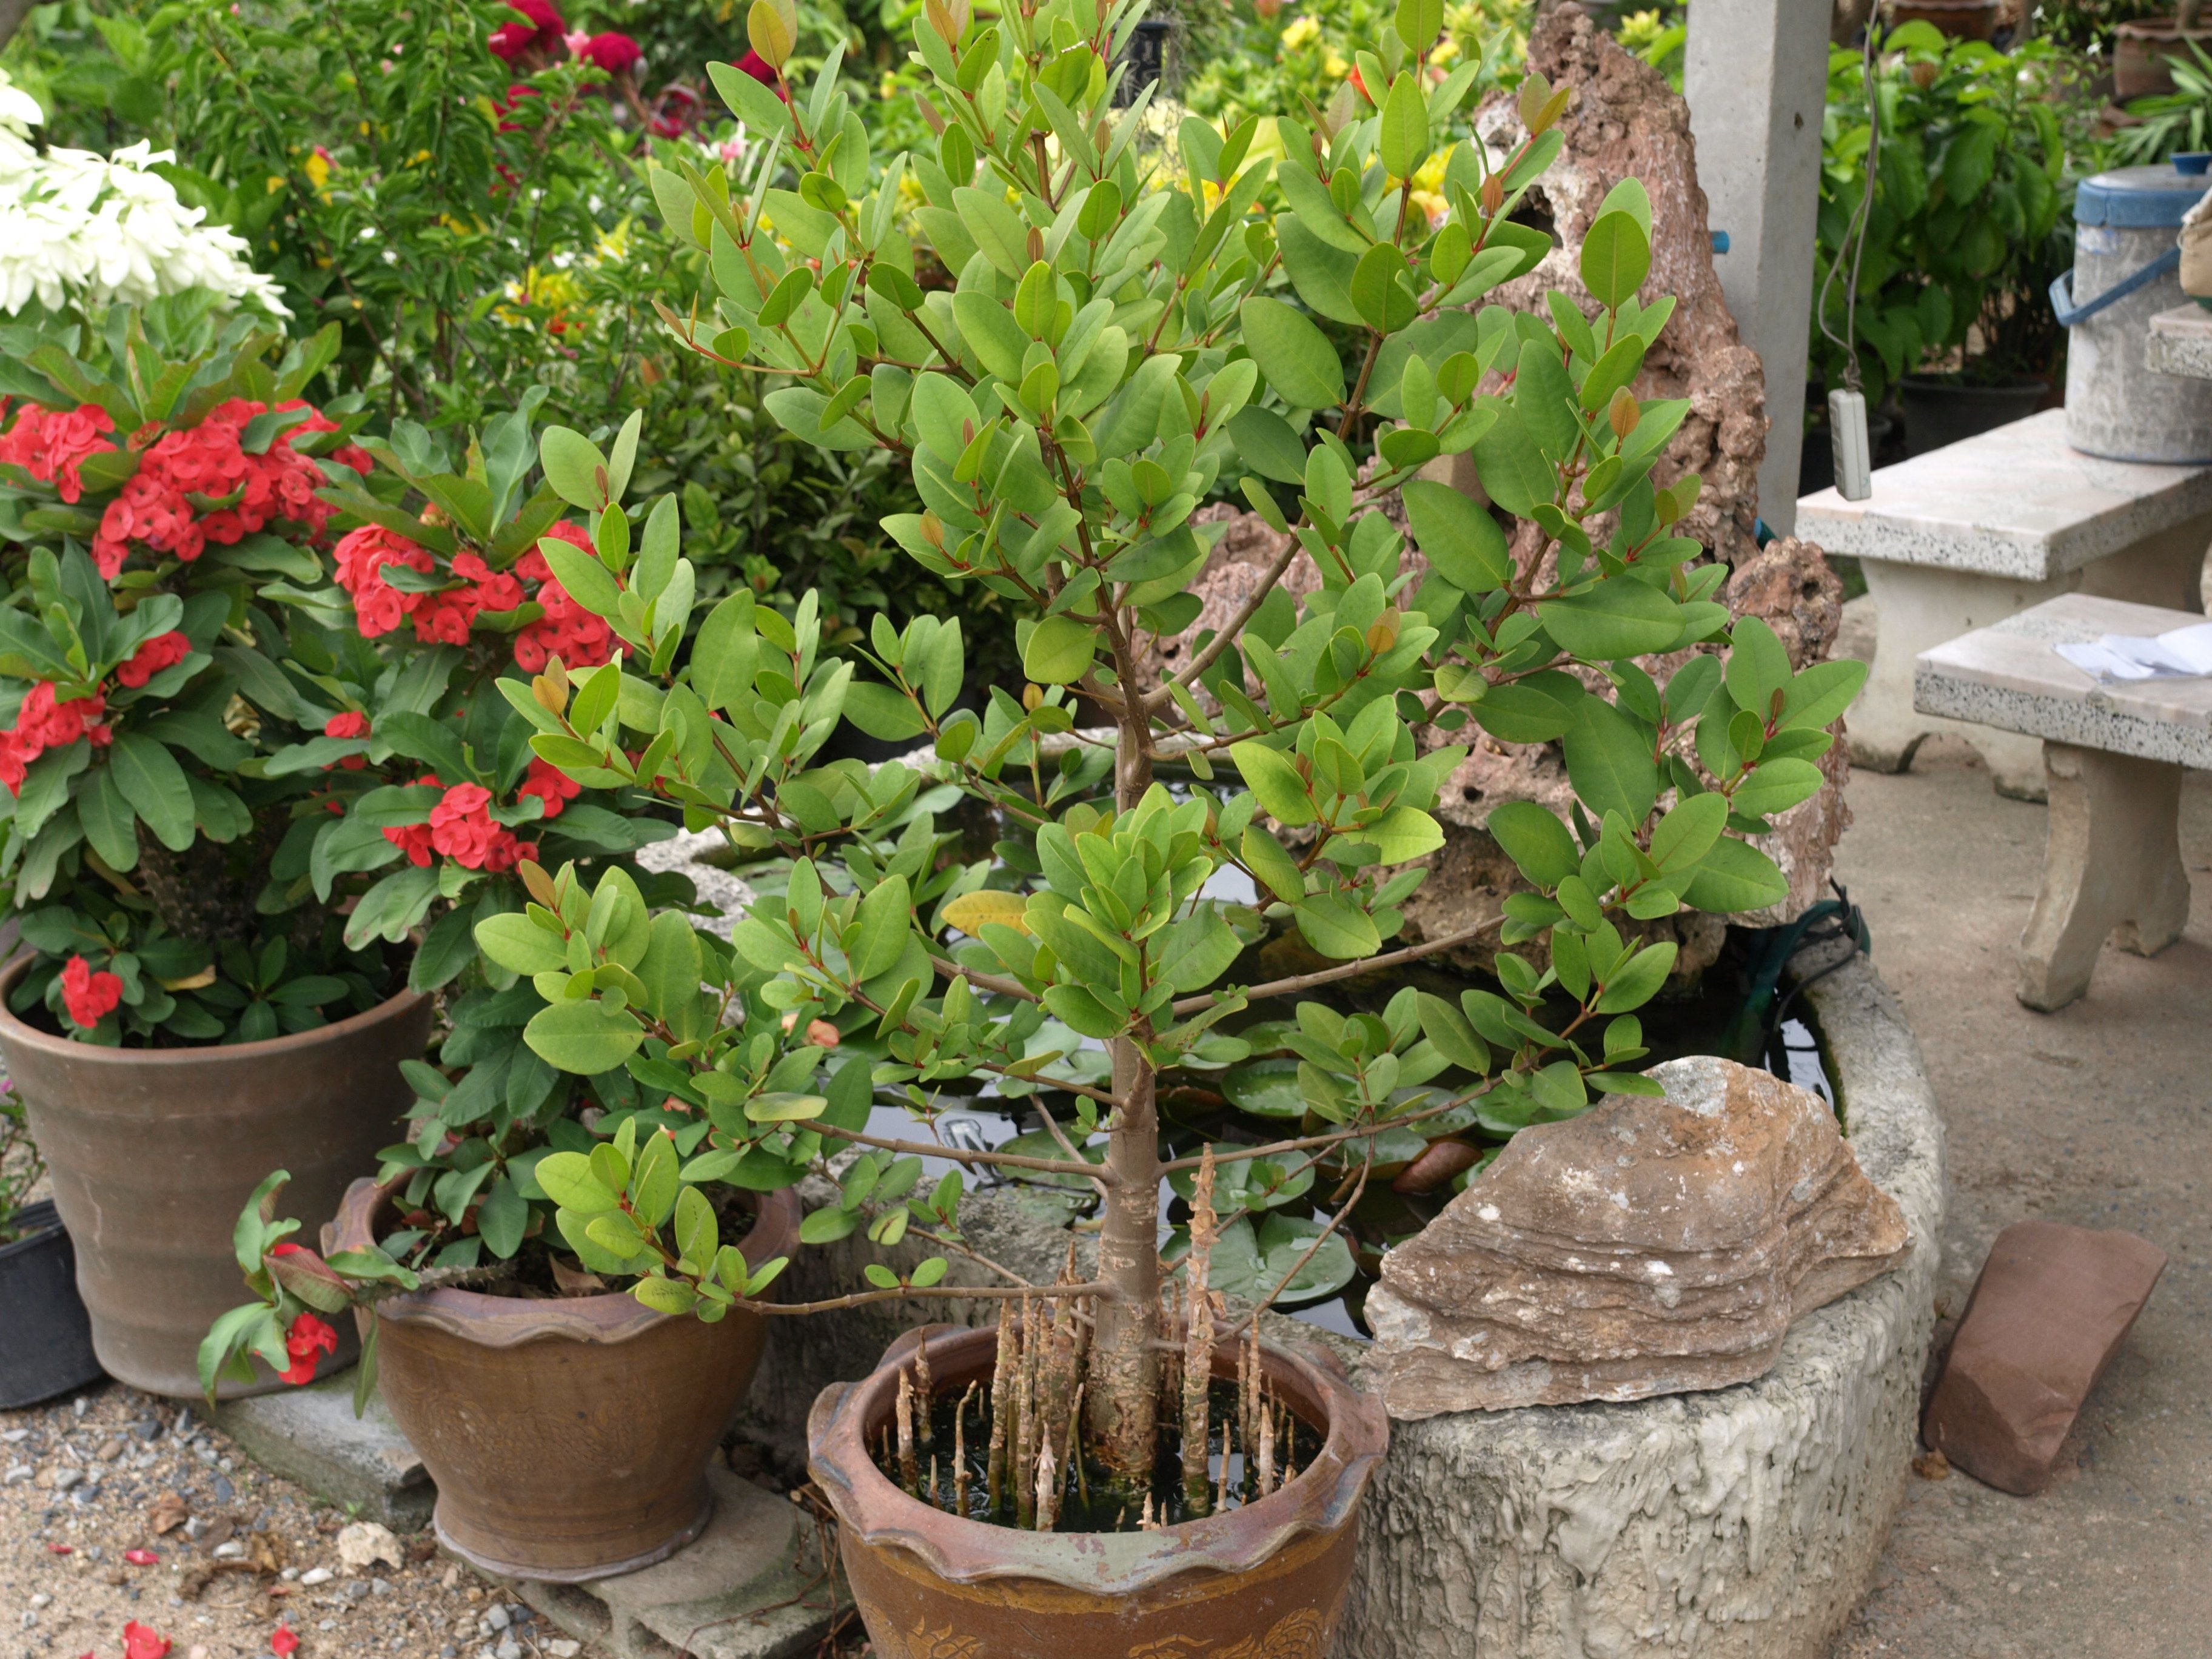 mangrove grown as pot plant | Garden ideas | Pinterest | Plants ...